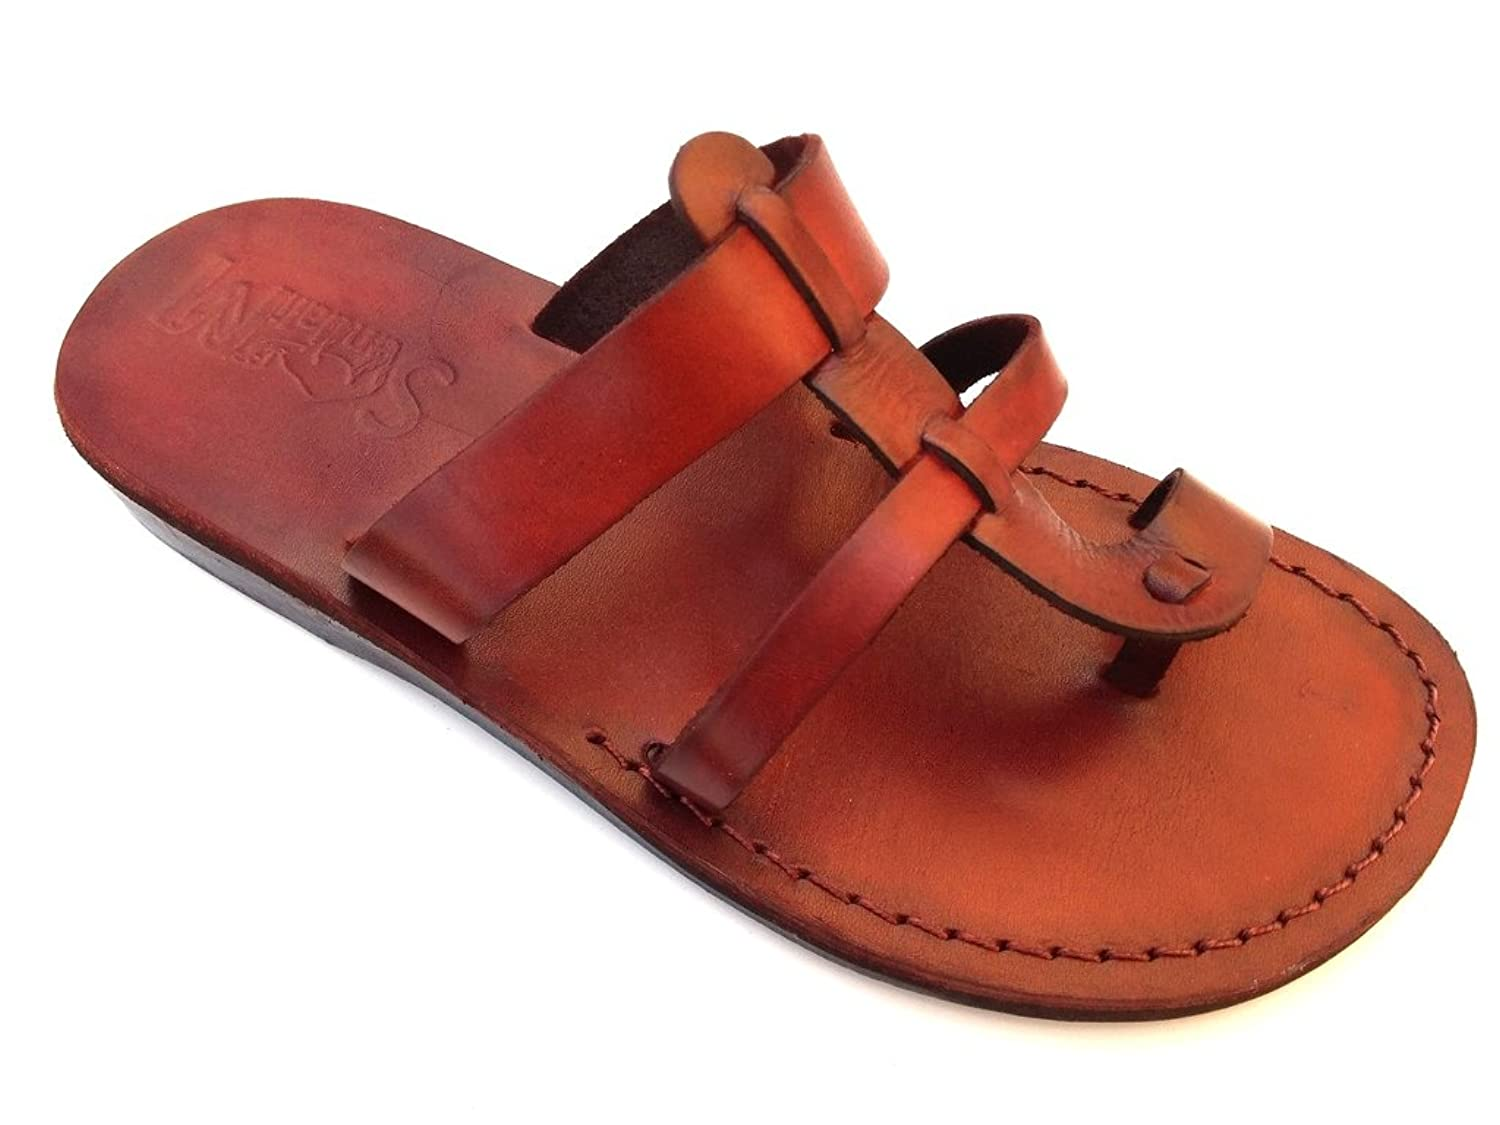 Beautiful Handmade SANDALS for Men Women GENUINE LEATHER - MENTA Style by SANDALIM - GET YOURS NOW !!!